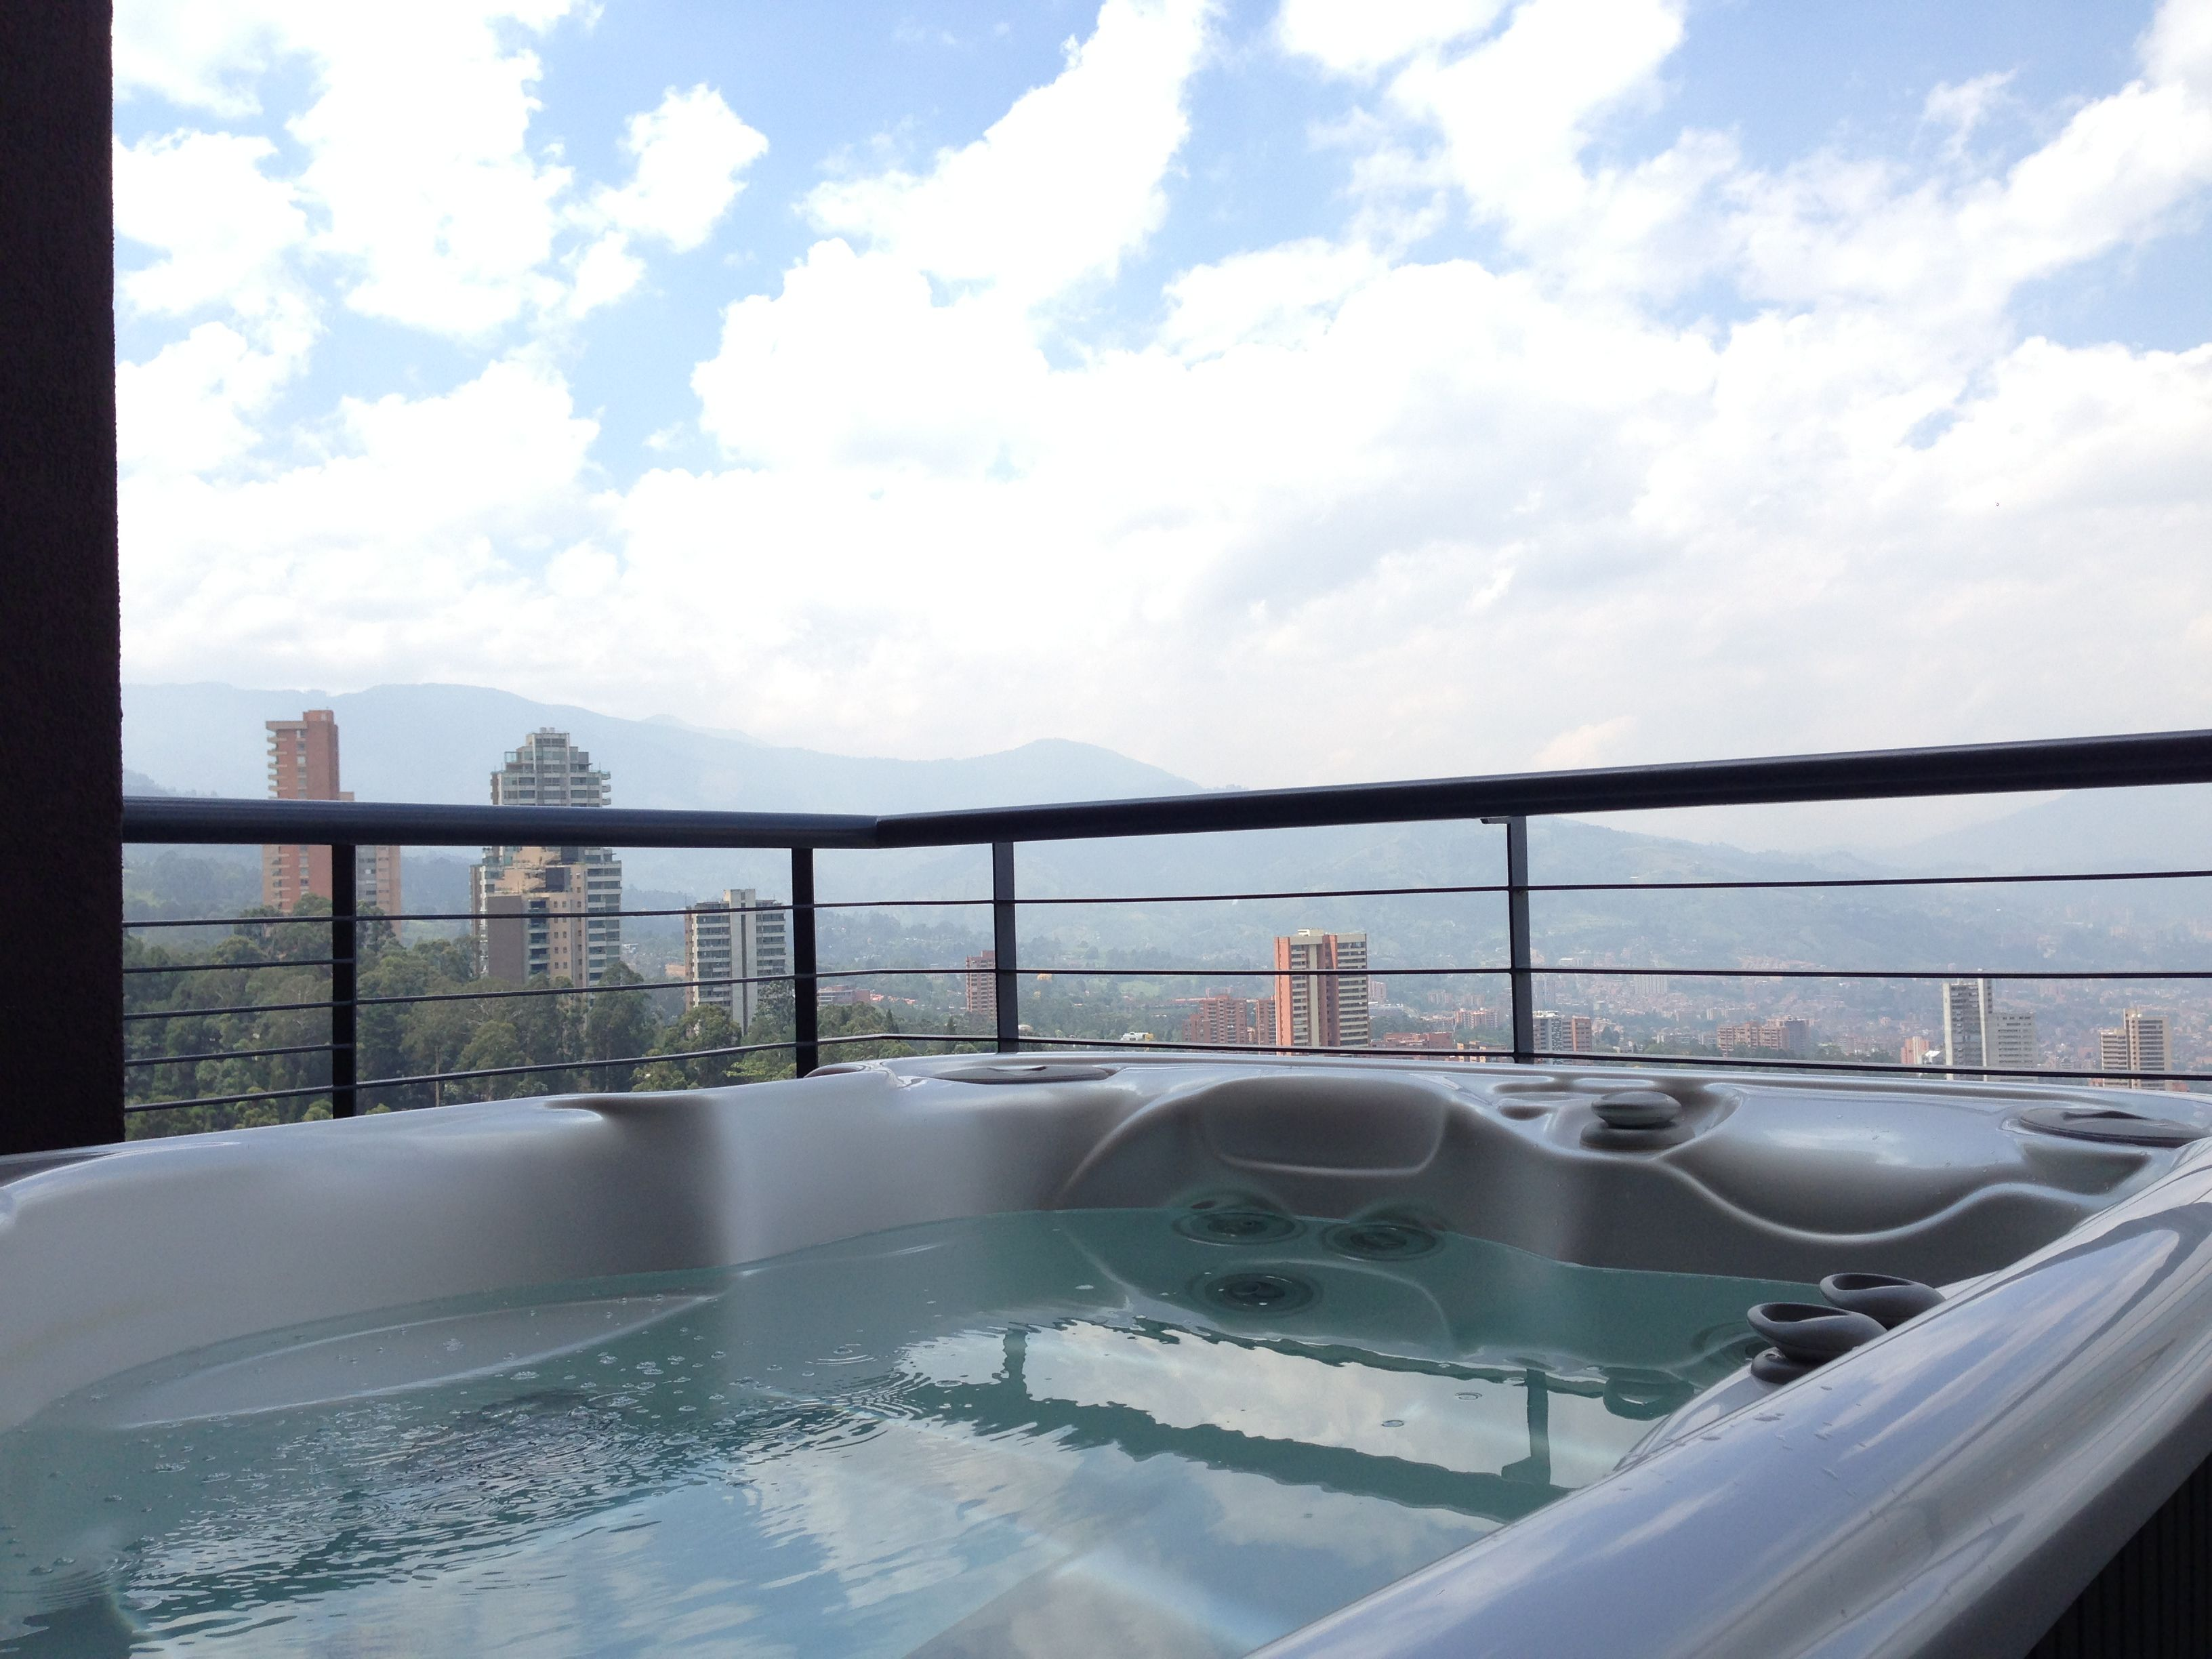 Is there a better view than a high rise hot tub overlooking the city  skyline?